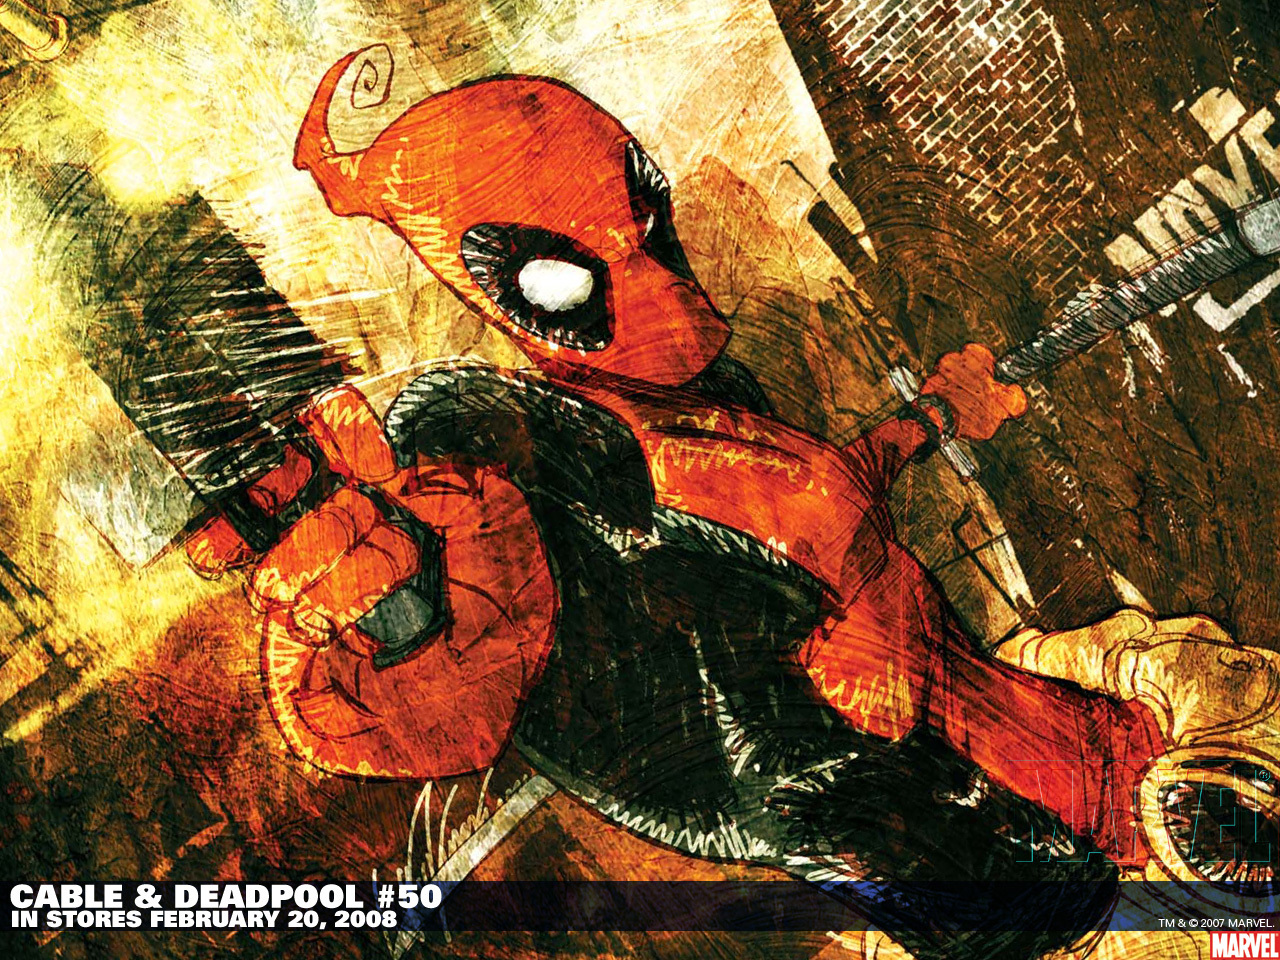 Deadpool Wallpaper   Deadpool Wallpaper 10619221 1280x960